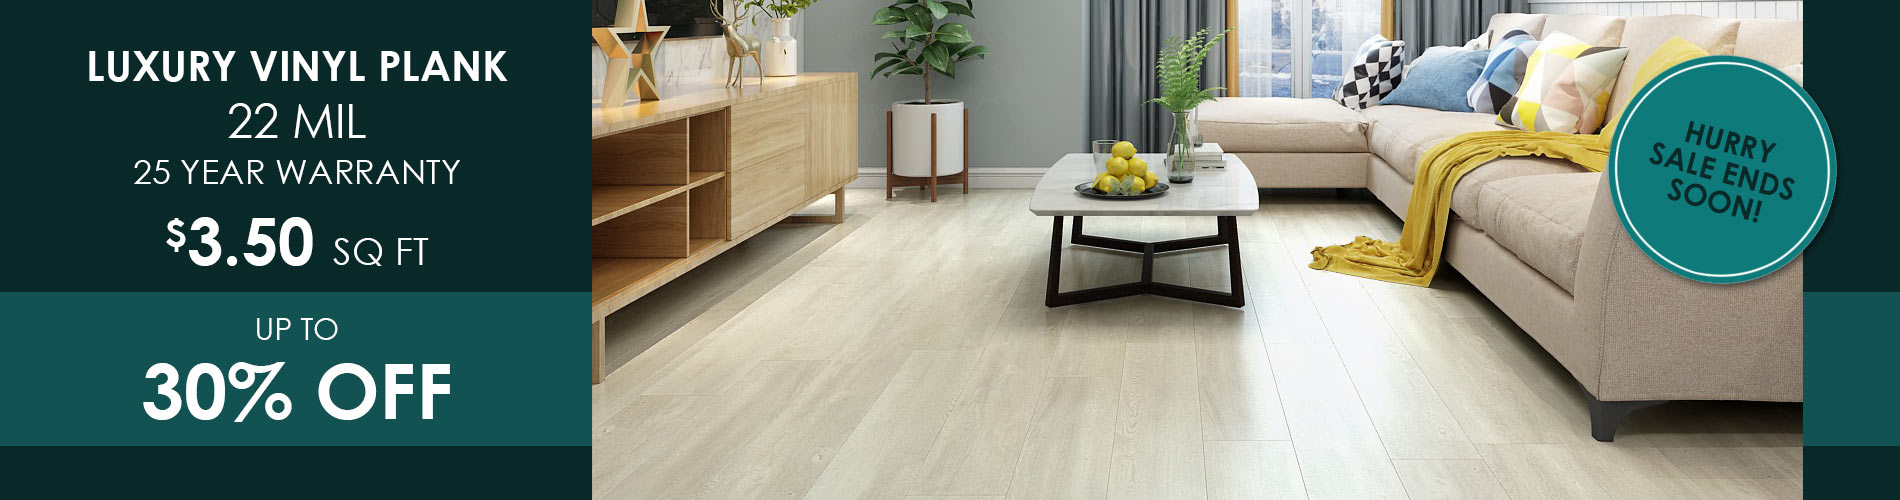 Luxury Vinyl Plank 22 mil 25 year warranty $3.50 sqft up to 30% Off - Hurry Sale Ends Soon